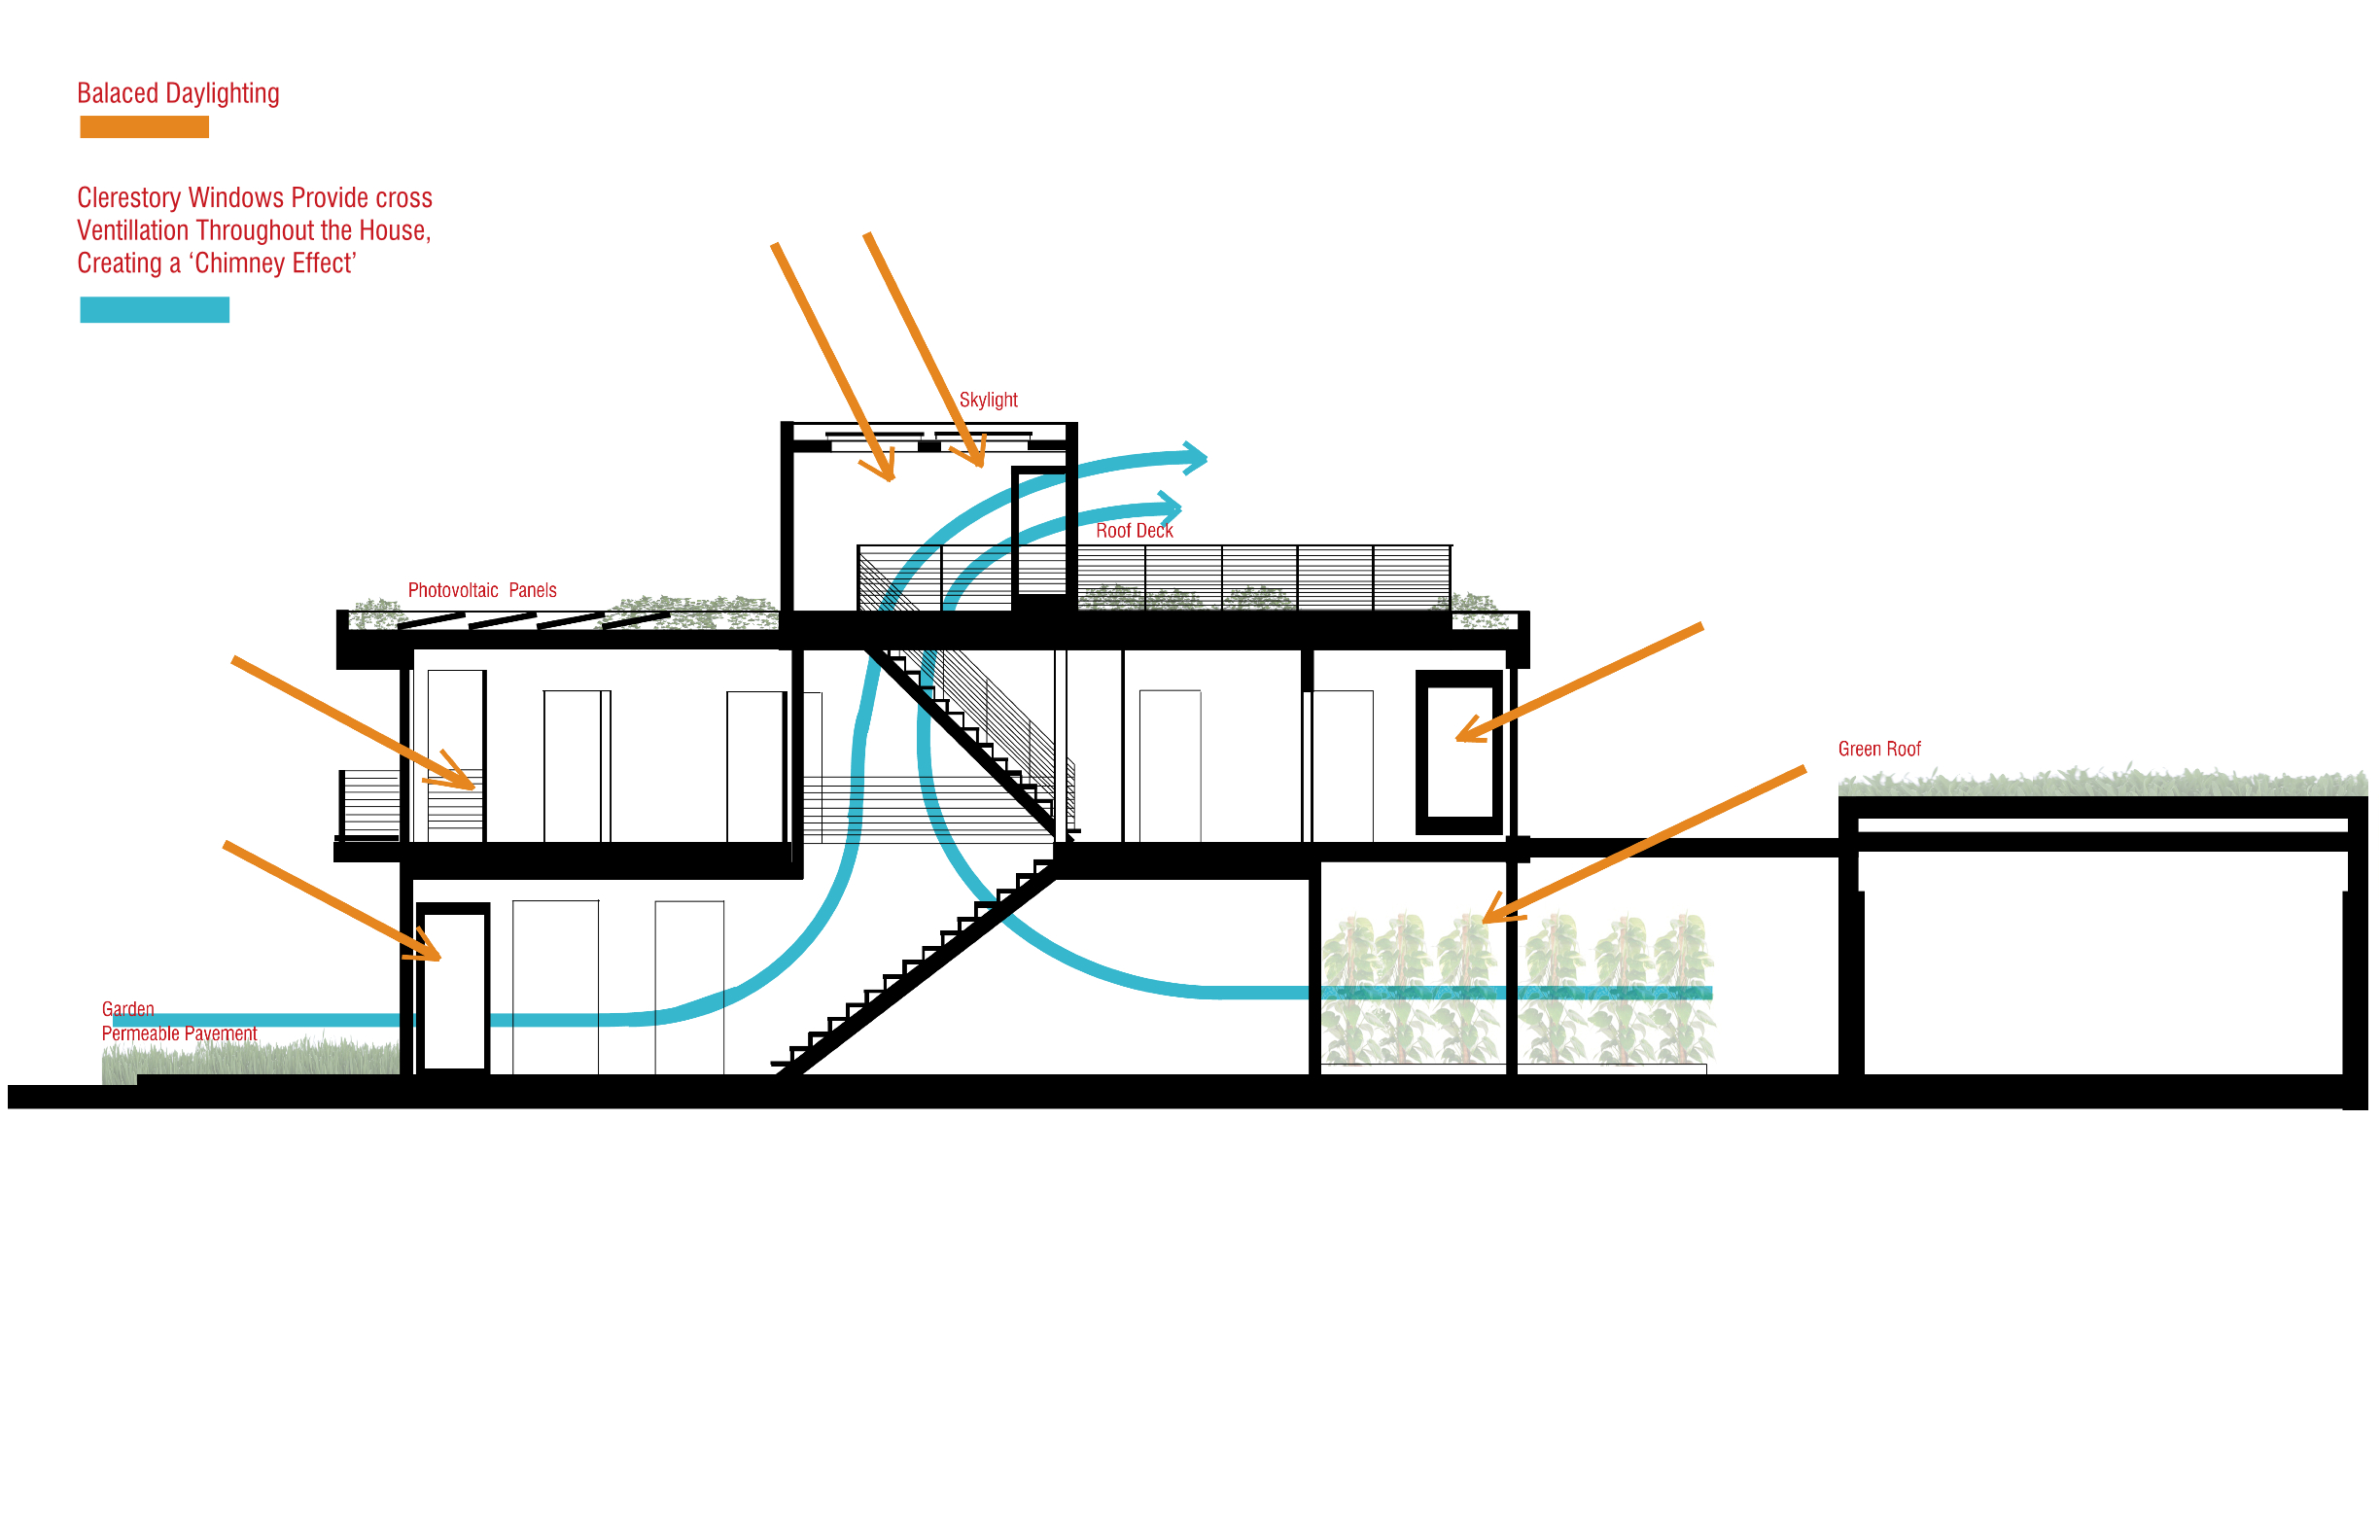 architecture section diagram wiring home network assignment 5 sustainable thinking through the eyes of